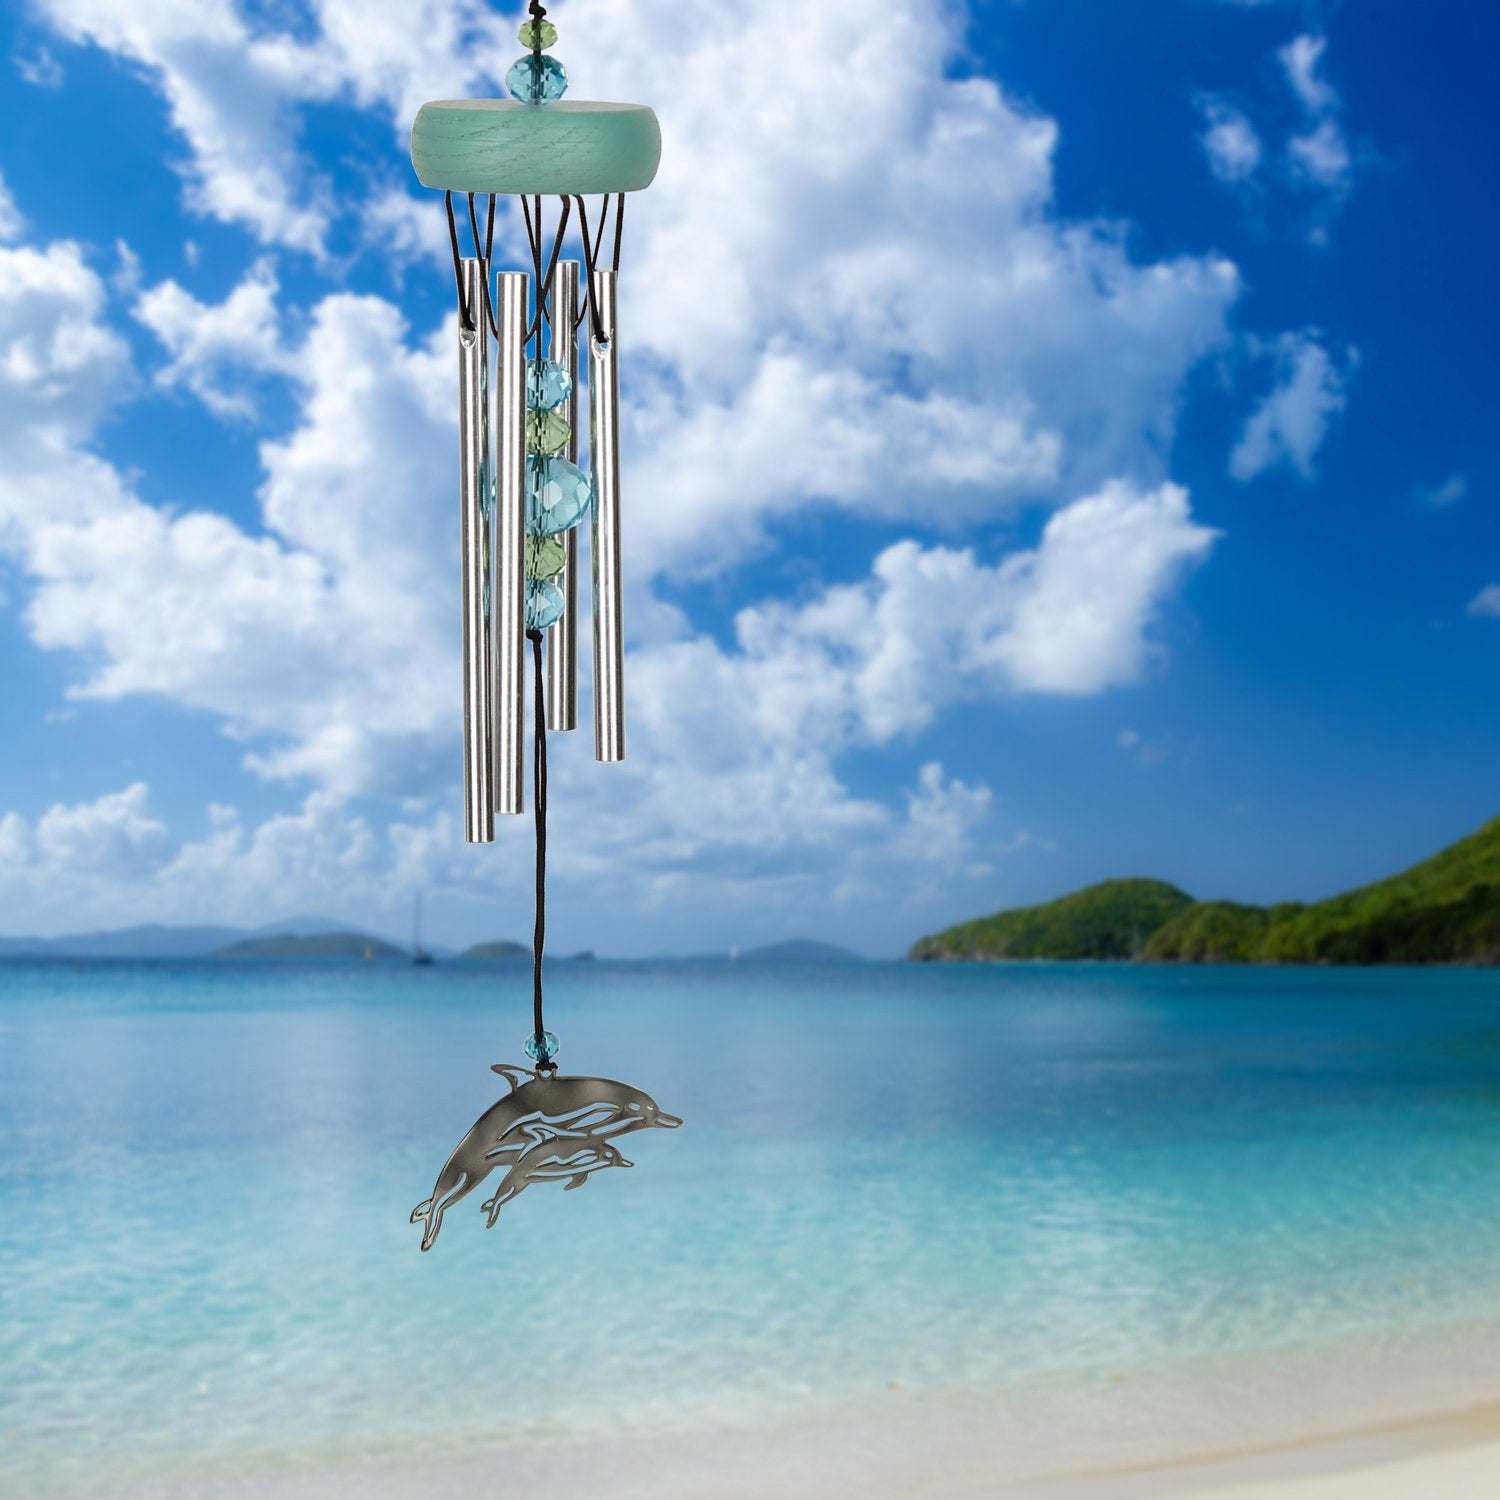 Chime Fantasy - Dolphin lifestyle image